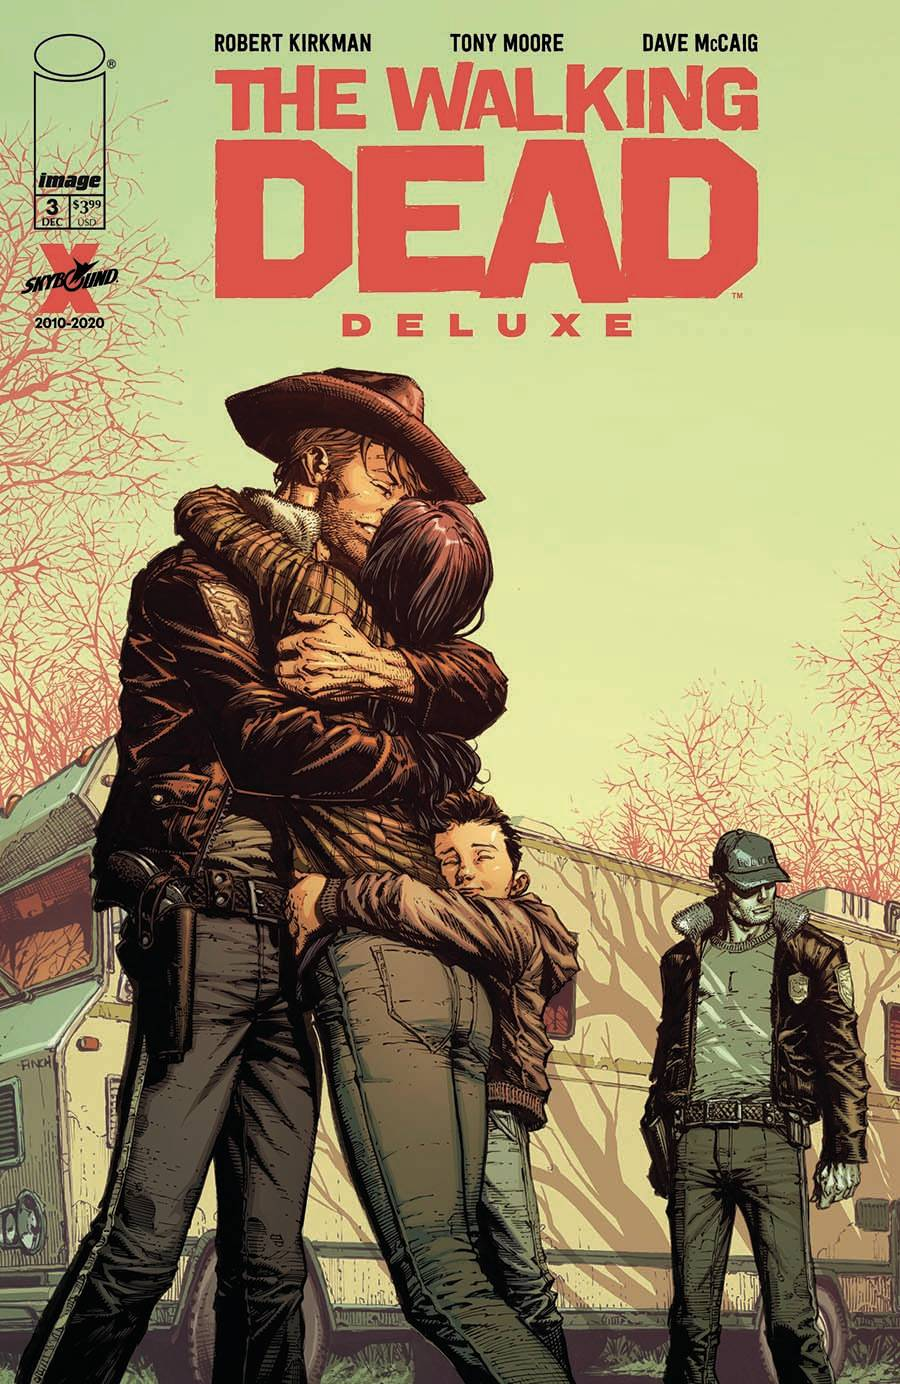 The Walking Dead Deluxe #3 (2020)